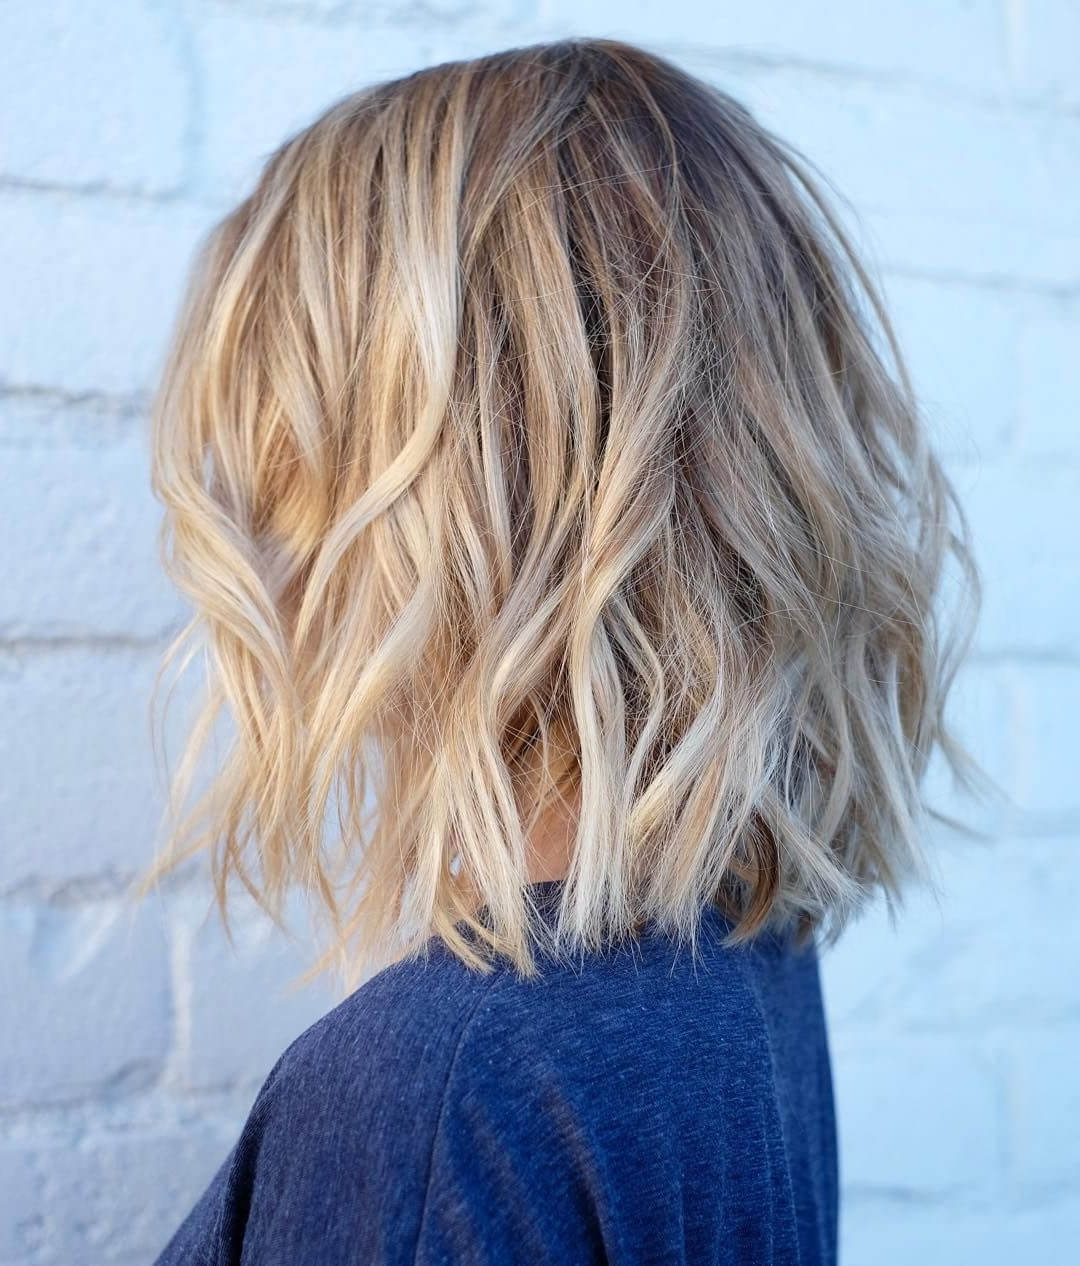 50 Fresh Short Blonde Hair Ideas To Update Your Style In 2018 Within Newest Side Parted Blonde Balayage Pixie Hairstyles (View 15 of 20)